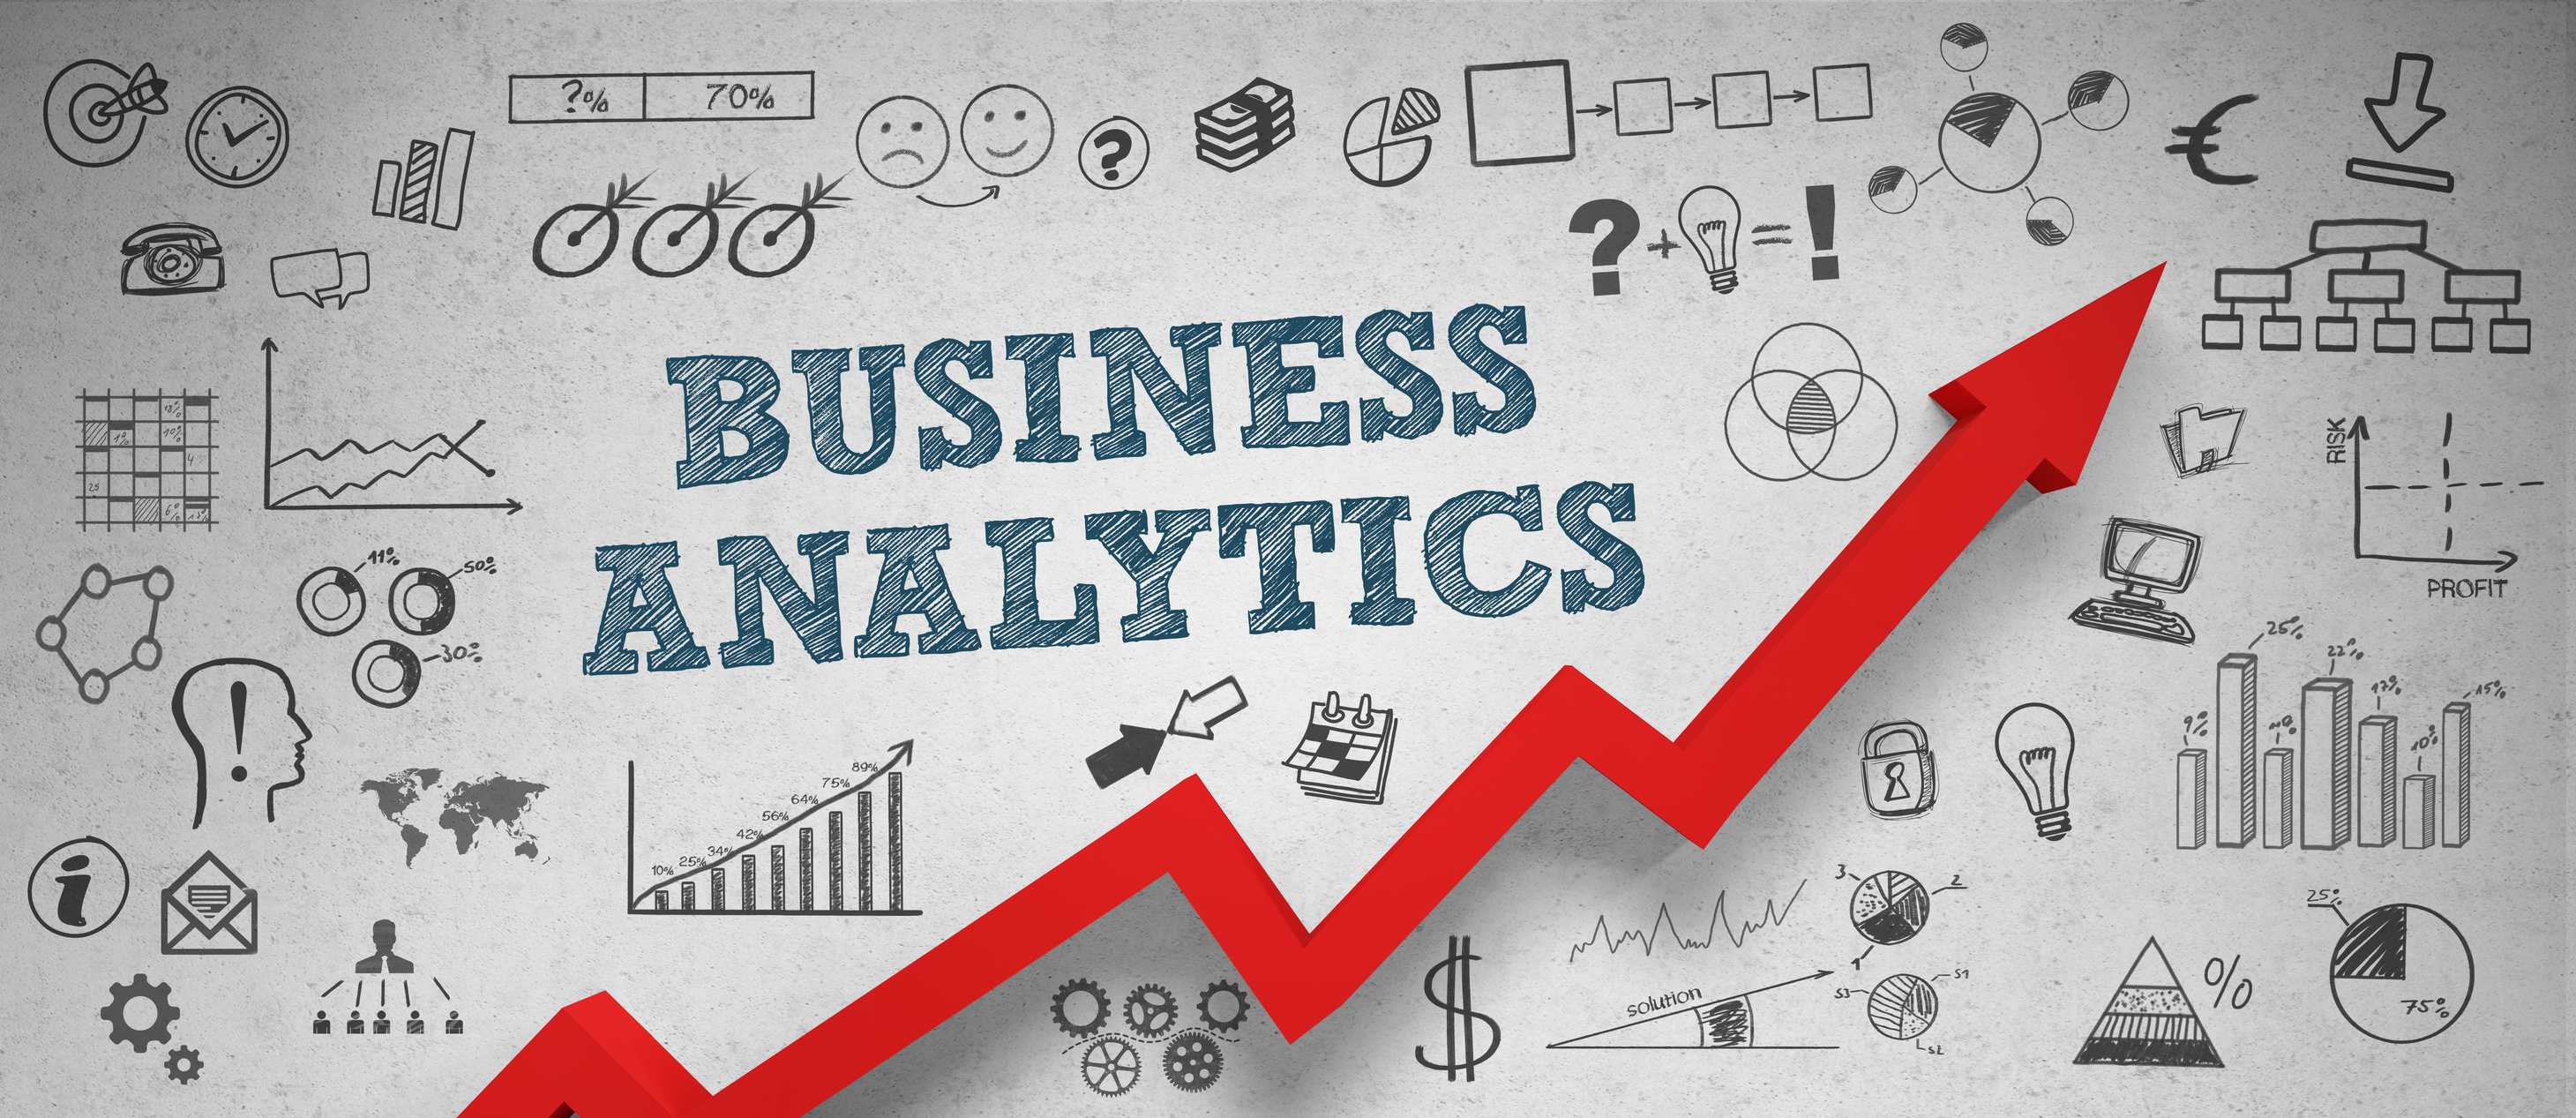 Business Analytics Blog, consultor business analytics, ventaja del consultor de business analytics, consultor de business intelligence